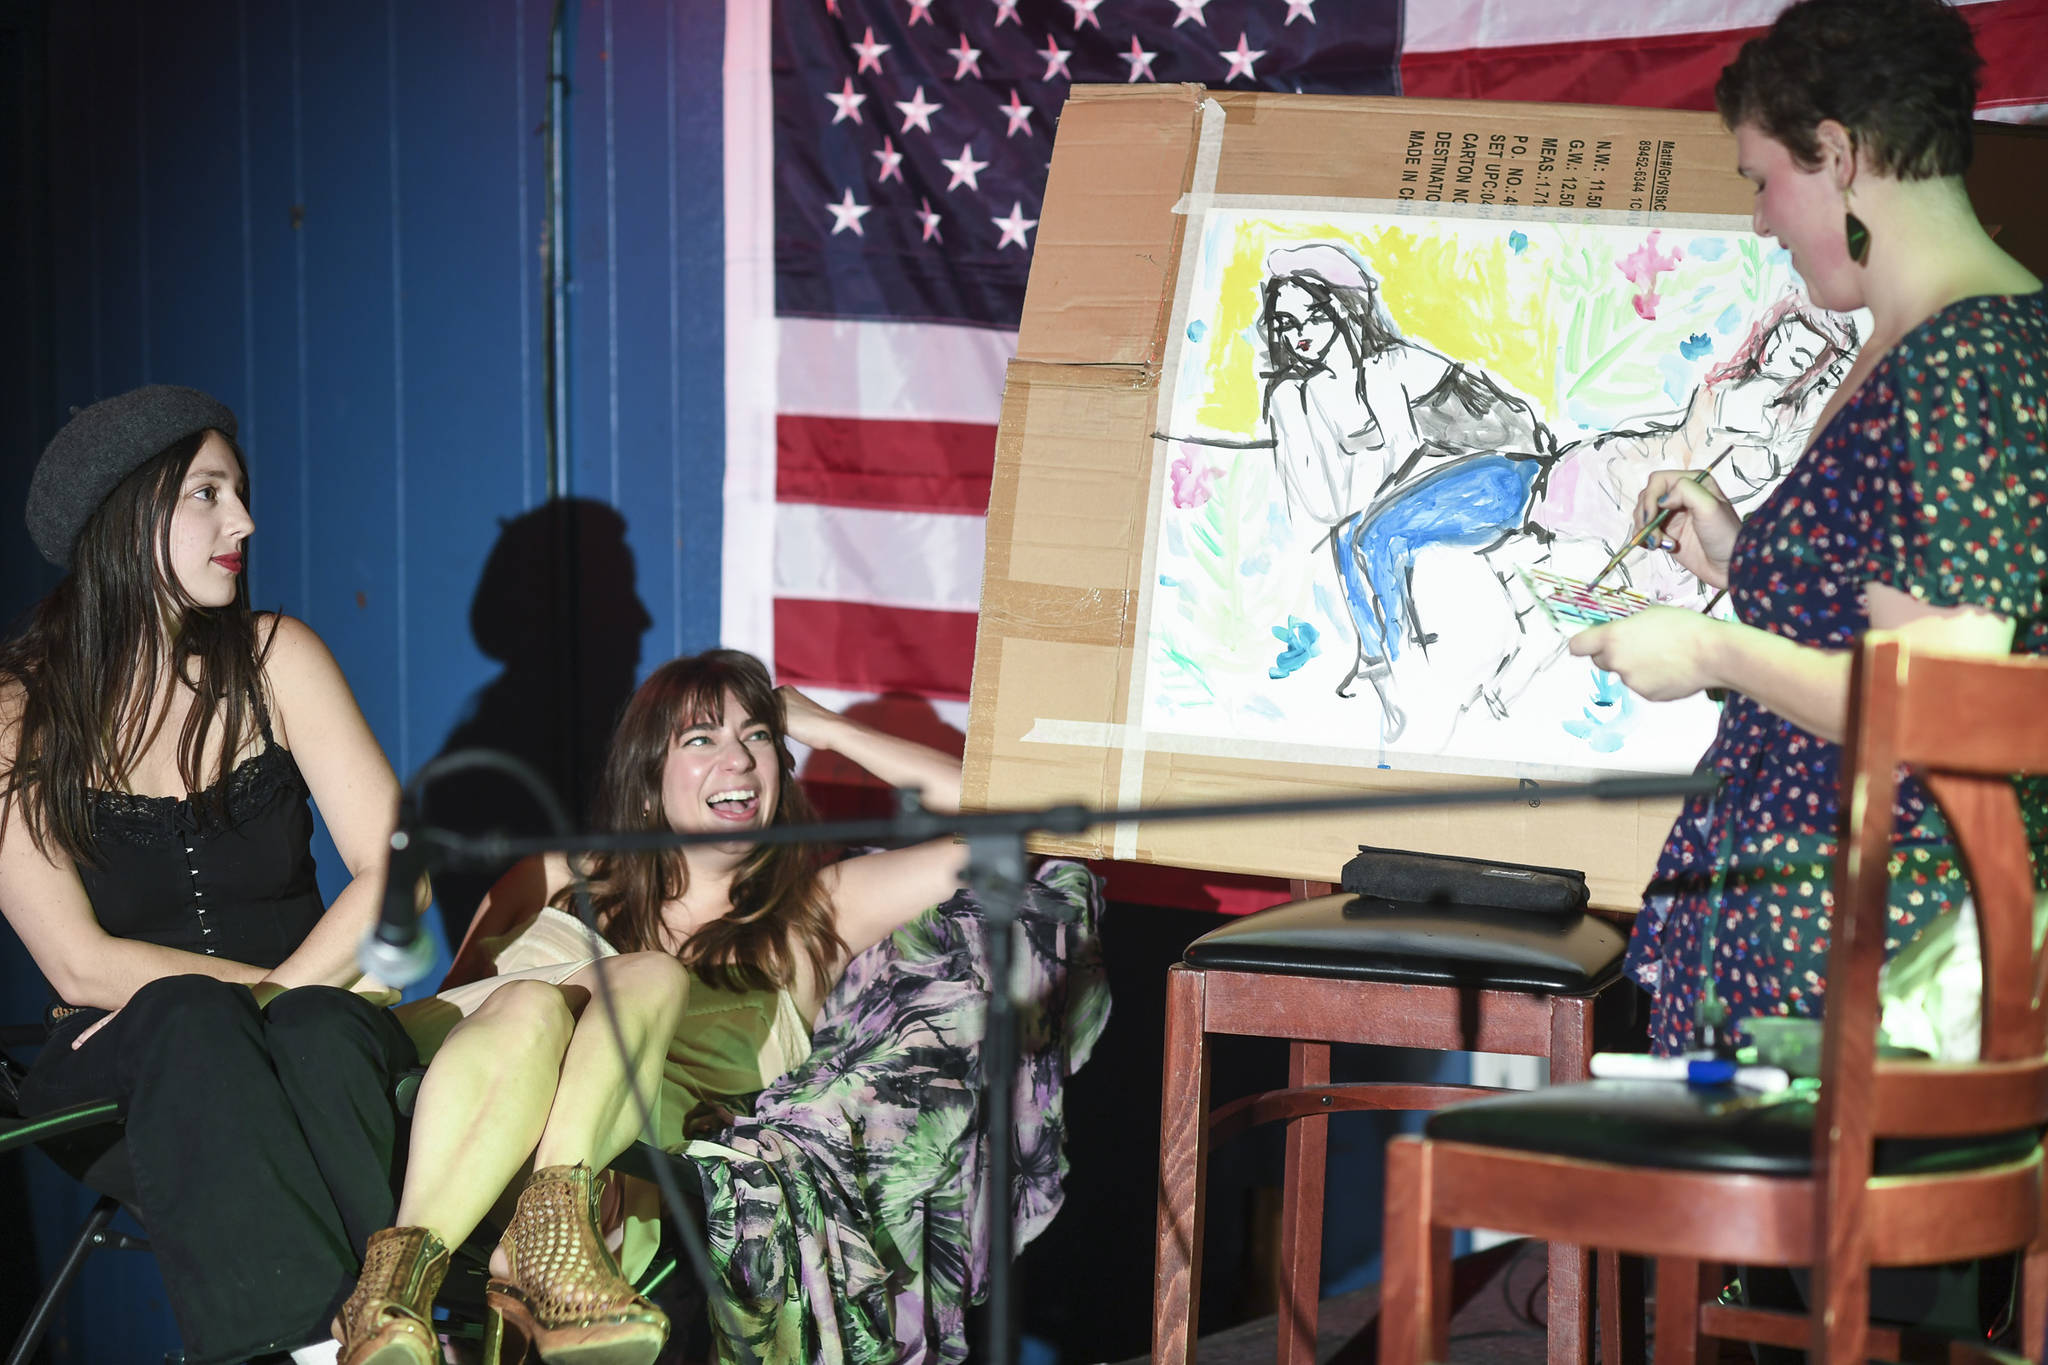 Natalie Weinberg, right, performs with a live model painting of Dana Herndon, center, and Serena Drazkowski during the GRLZ open mic night at the The Rendezvous Bar on Wednesday, Aug. 14, 2019. (Michael Penn | Juneau Empire)